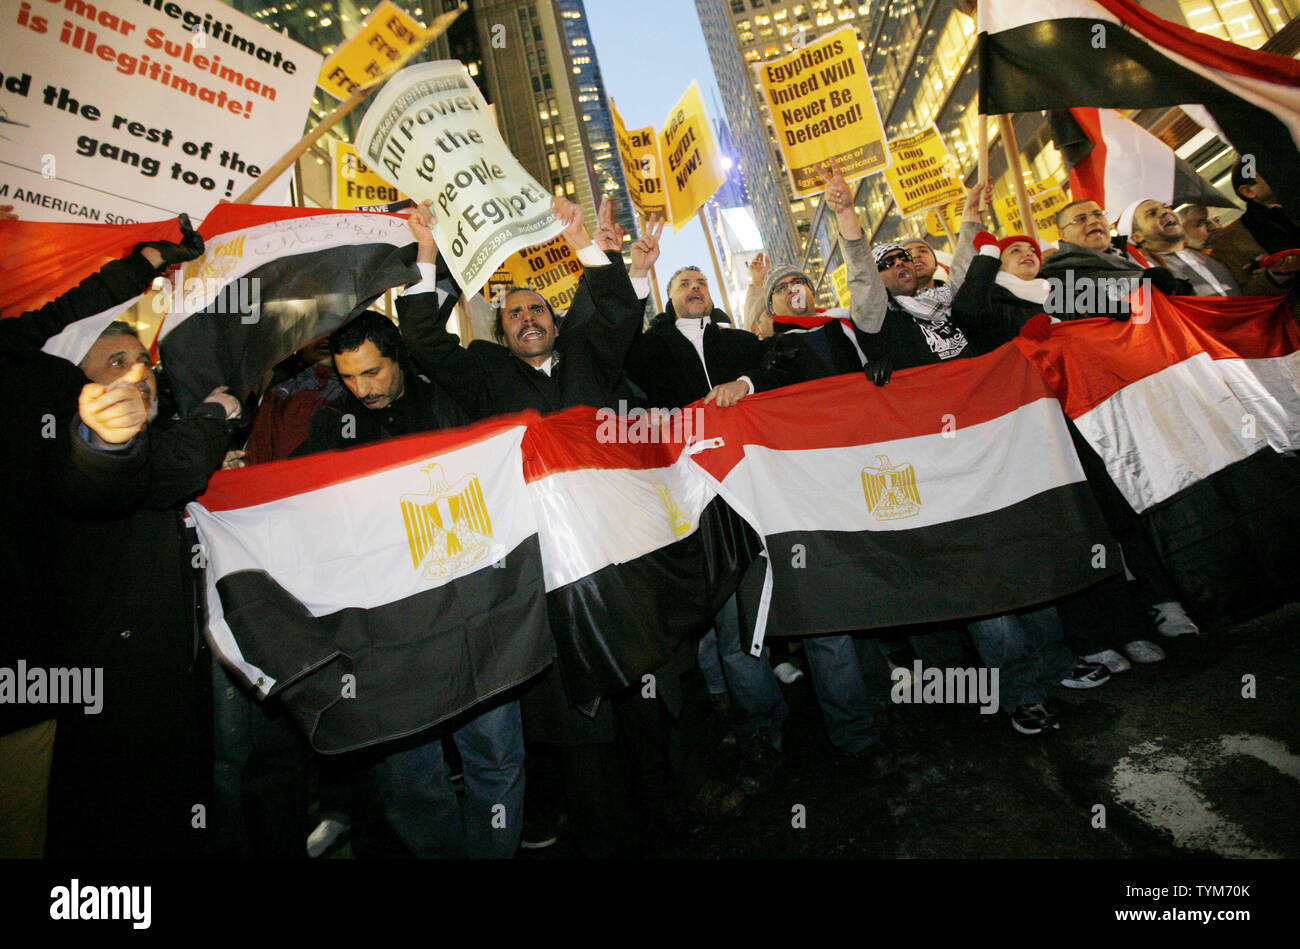 "Hundreds of Egyptian-Americans march along 42nd Street.towards the Egyptian Consulate as they protest Egyptian President Hosni Mubarak on February 4, 2011 in New York City. The demonstration coincides with a larger rally in Cairo which has been called ""the day of departure"" and follows days of protesting by Egyptians frustrated with Mubarak's leadership.     UPI /Monika Graff Stock Photo"